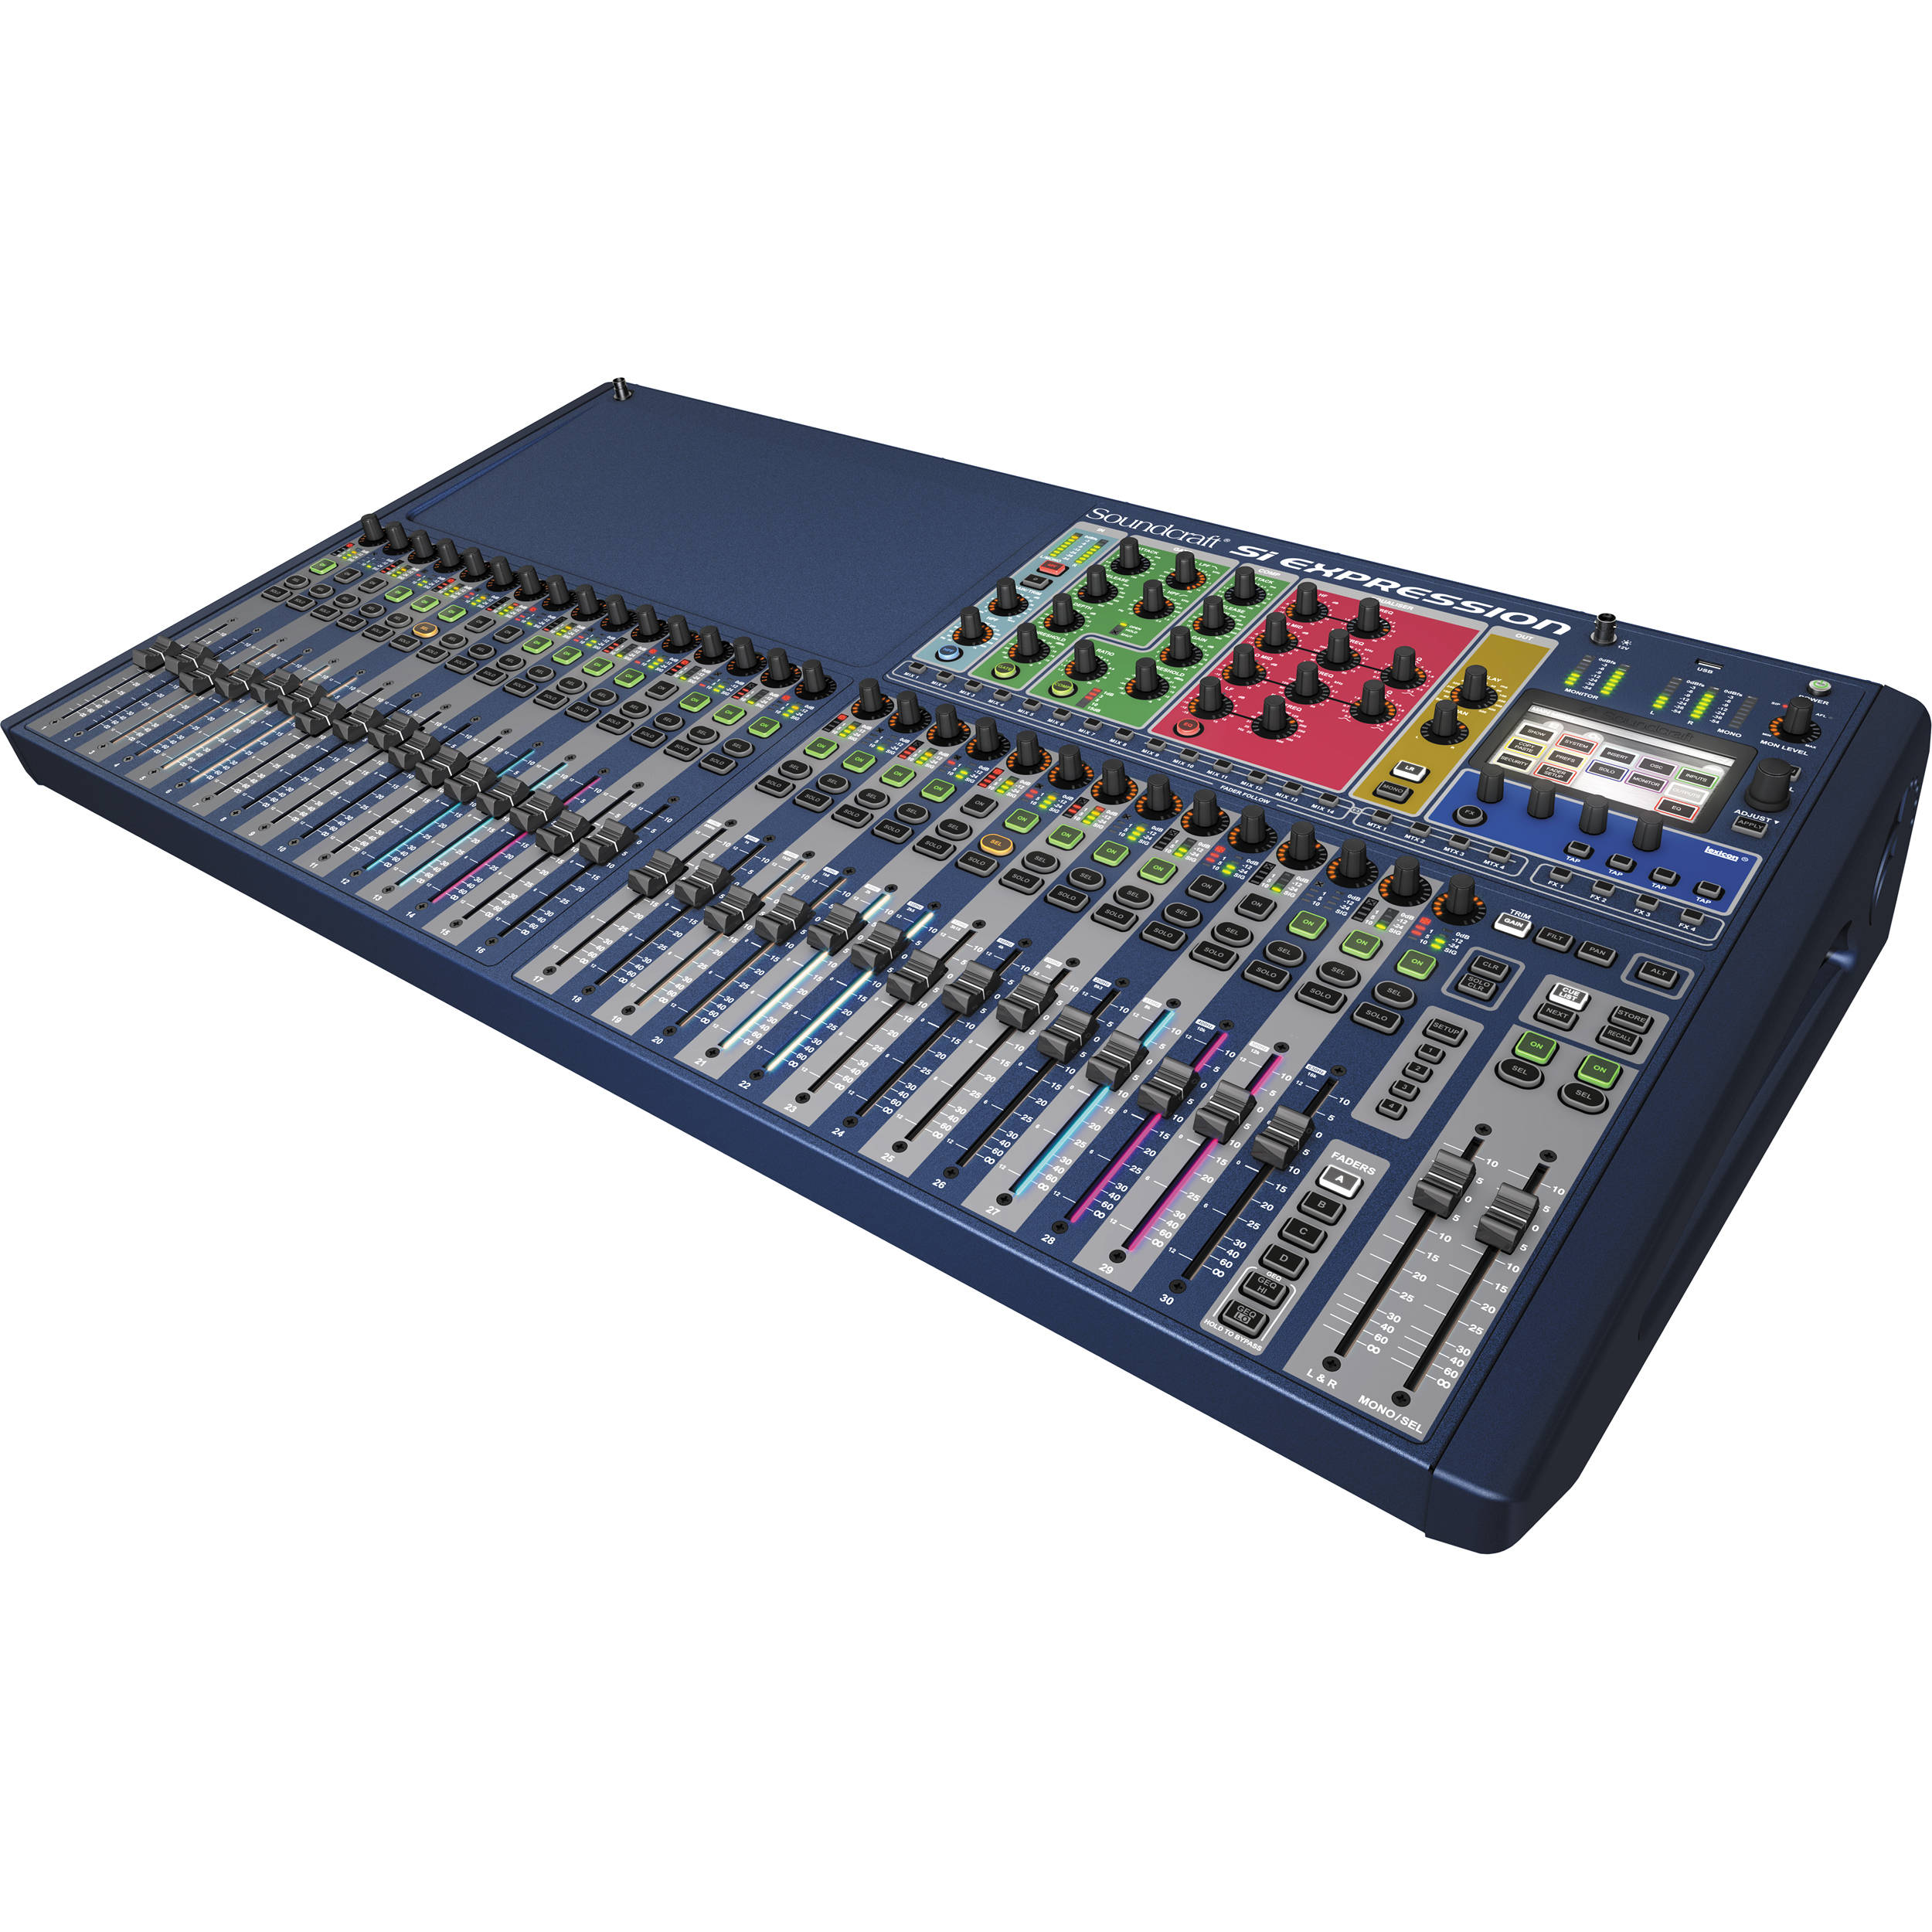 soundcraft si expression 3 digital mixer 5035679 b h photo video. Black Bedroom Furniture Sets. Home Design Ideas